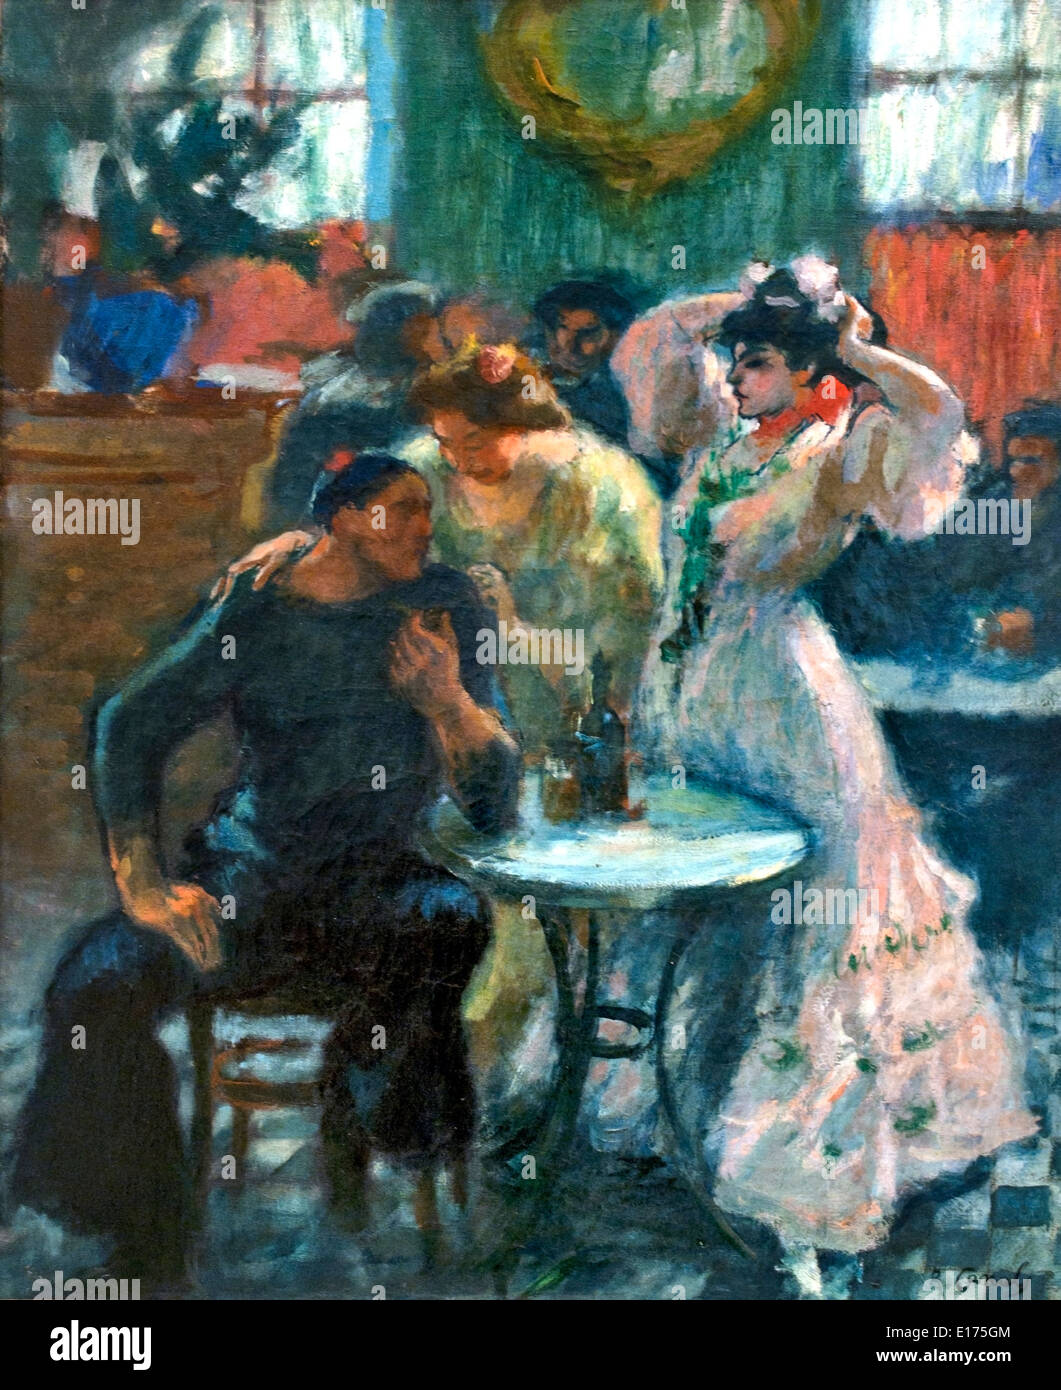 In the Bar 1910 Ricard Canals 1876-1931 Spain Spanish - Stock Image